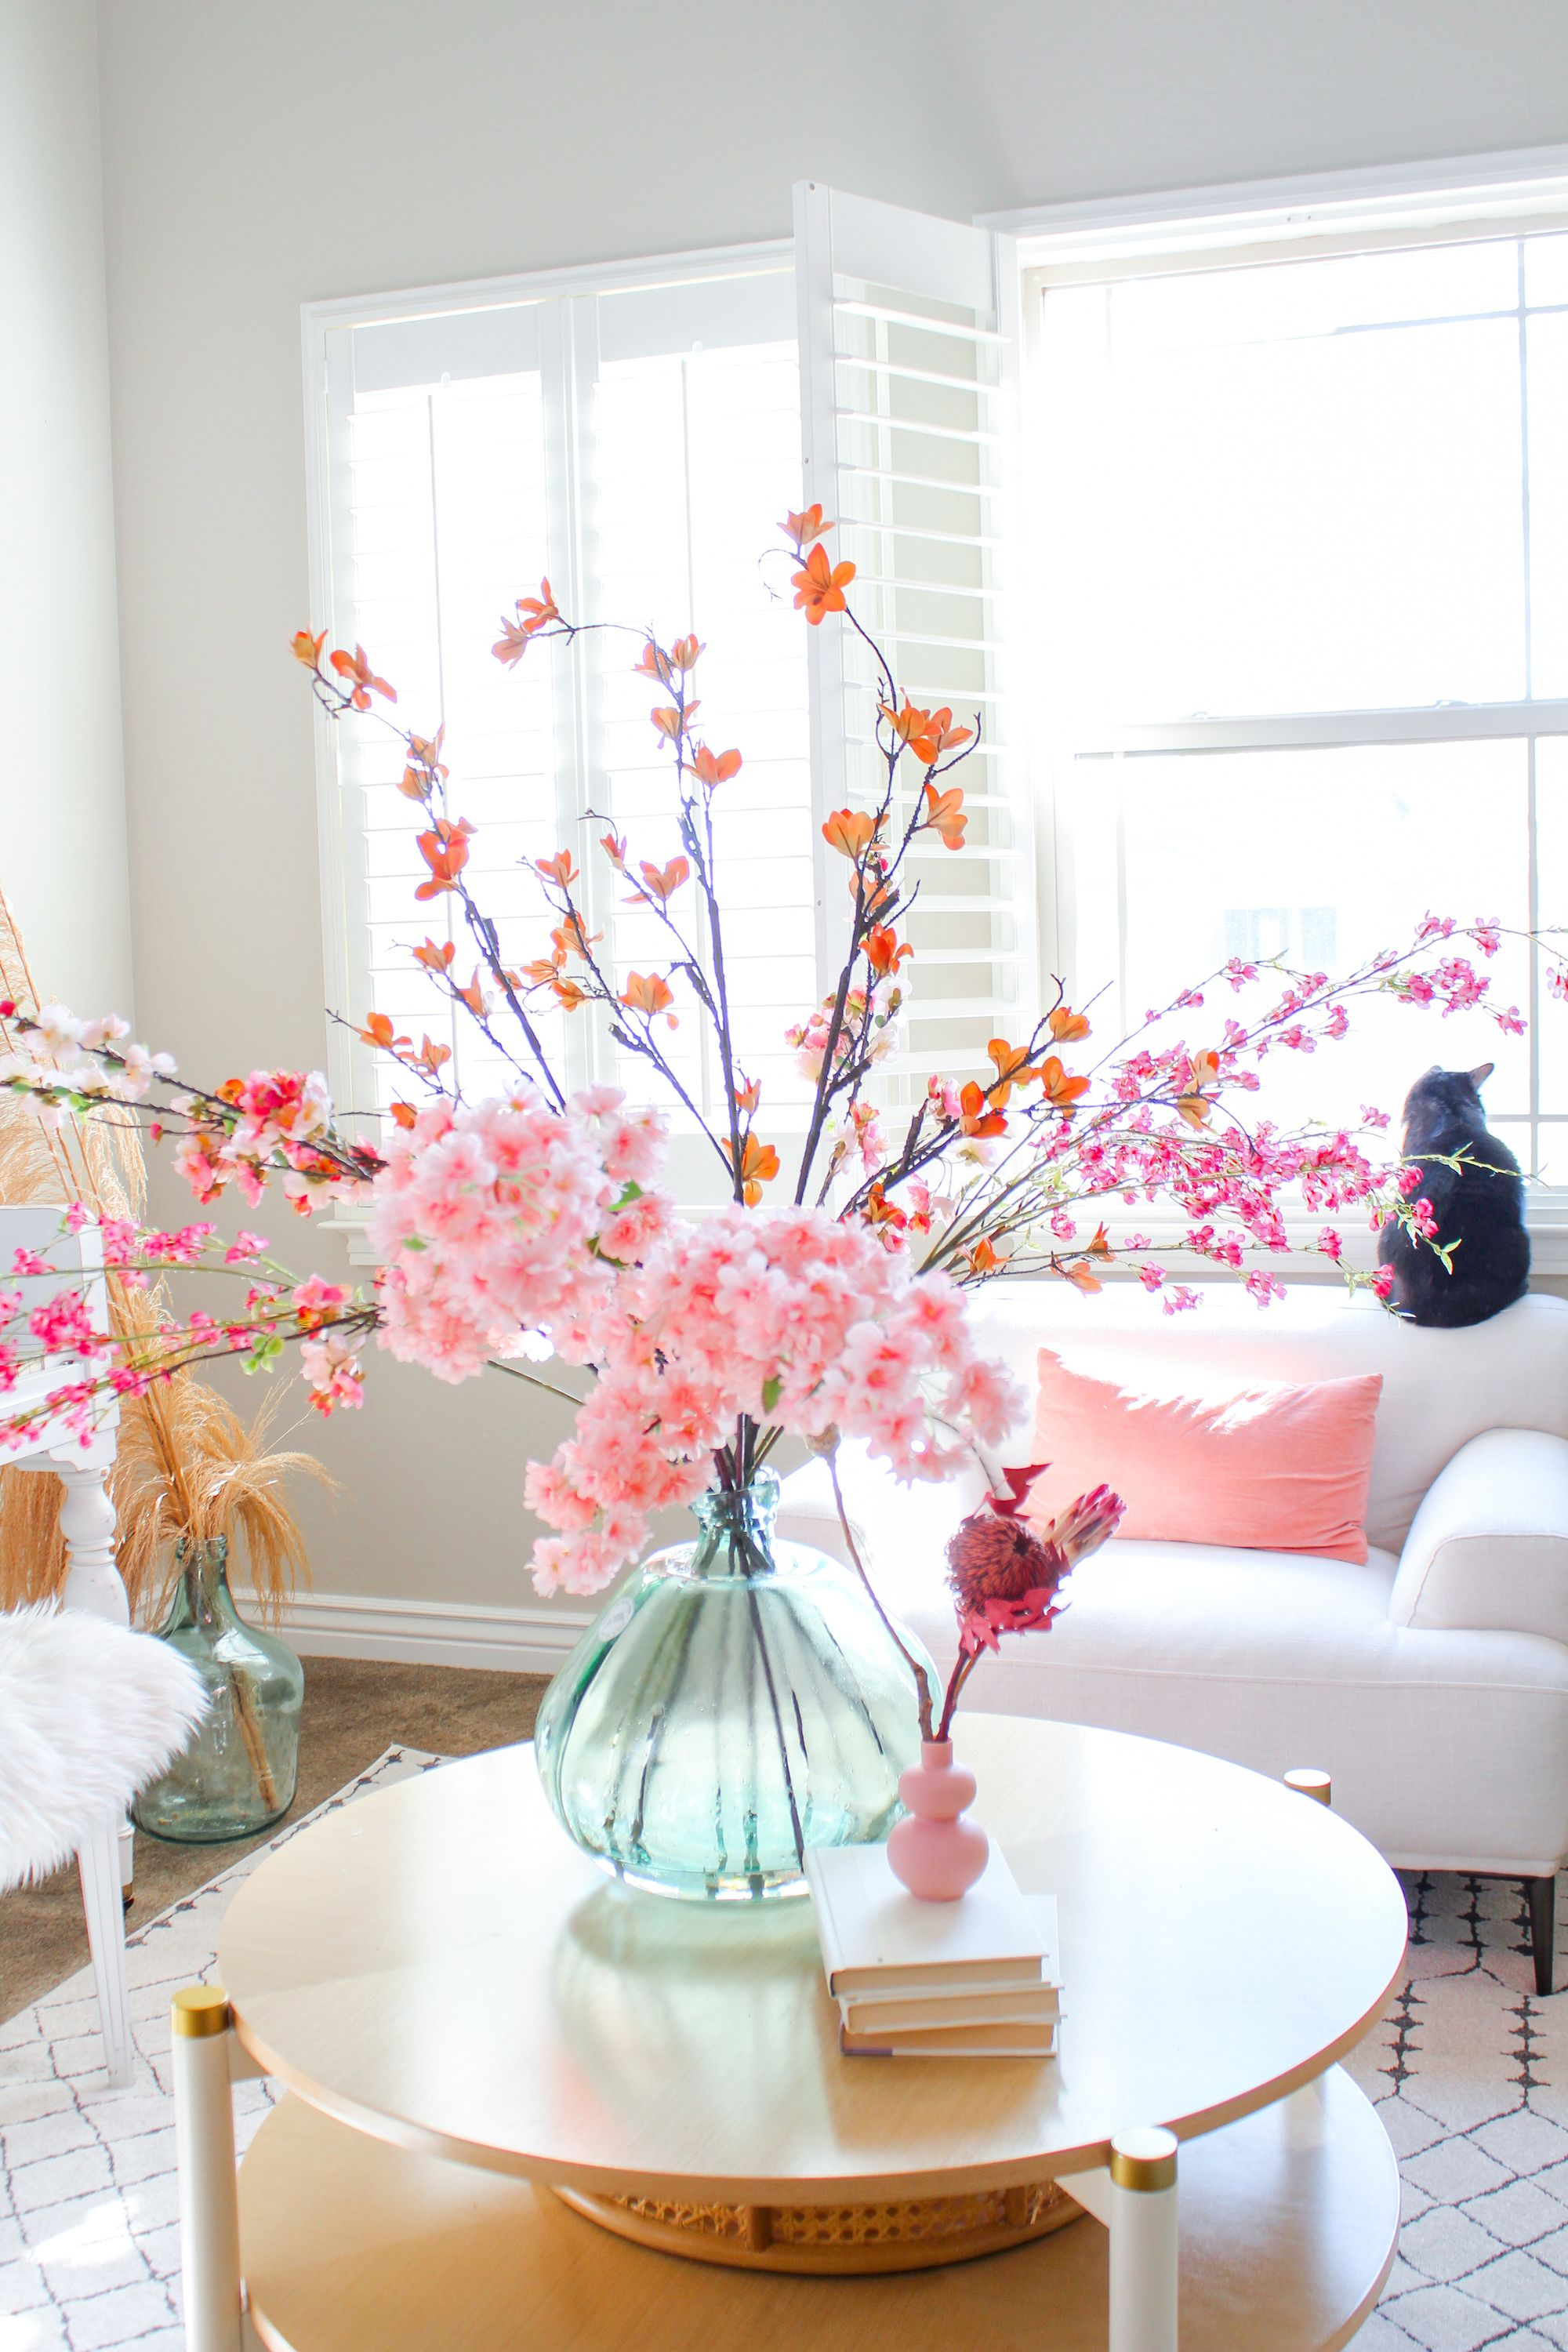 Get The Look For Your Boho Home Decor With Fake Spring Branches From Afloral Com Image By Dreaming Of Decor Springdecor Cherr In 2020 Decor Home Decor Branch Decor